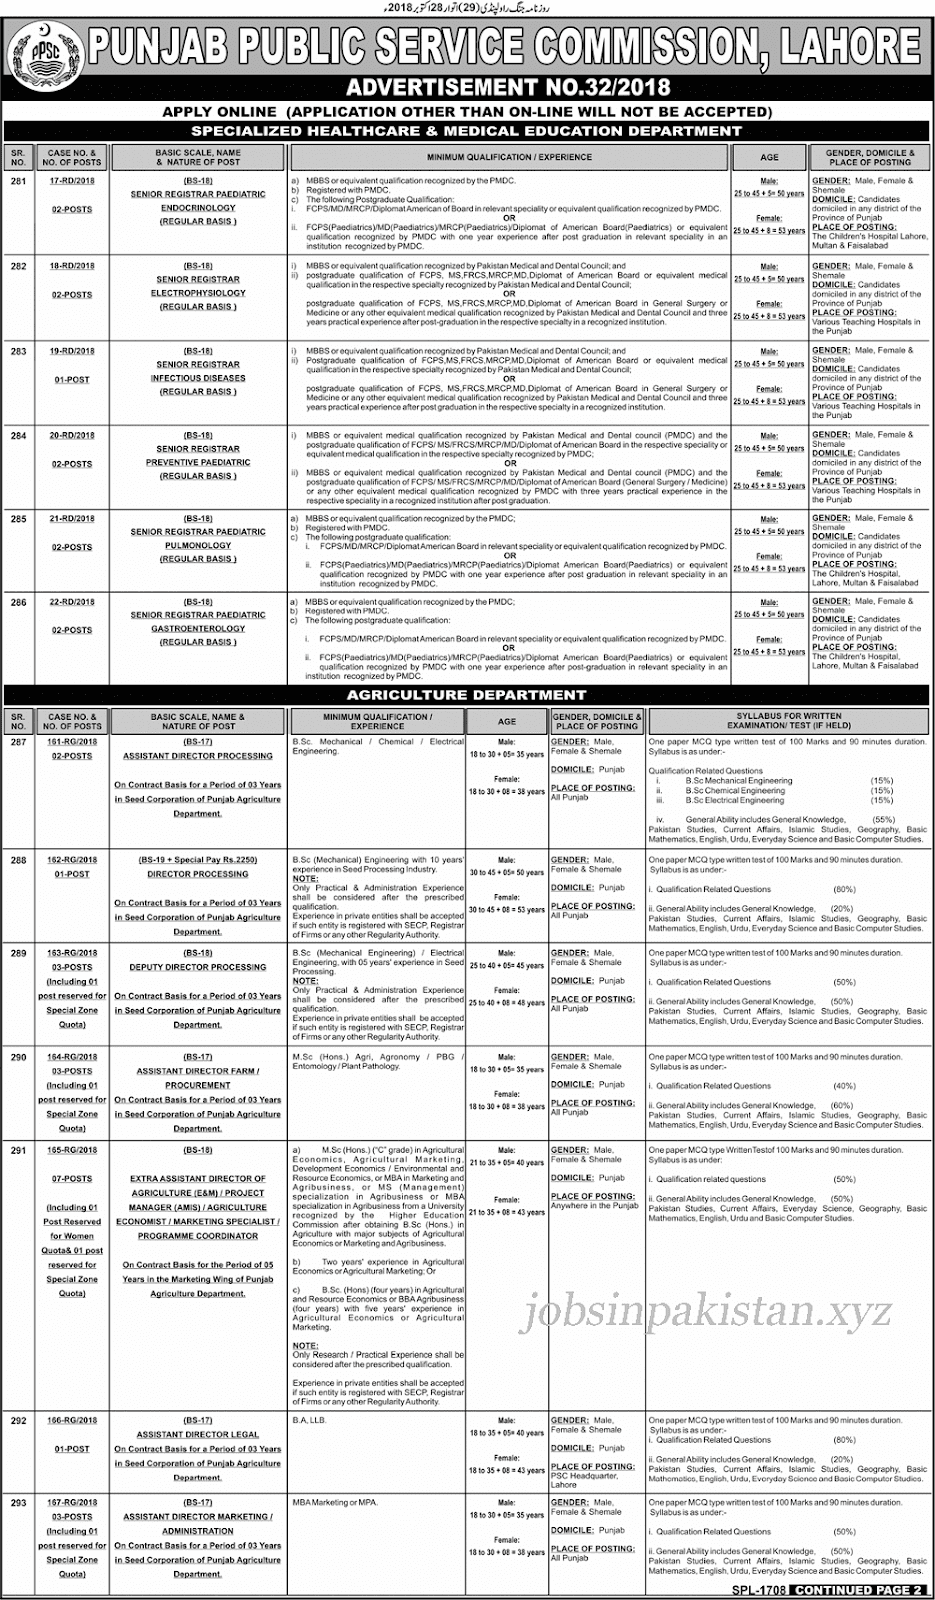 PPSC Advertisement 32/2018 Page Number 1